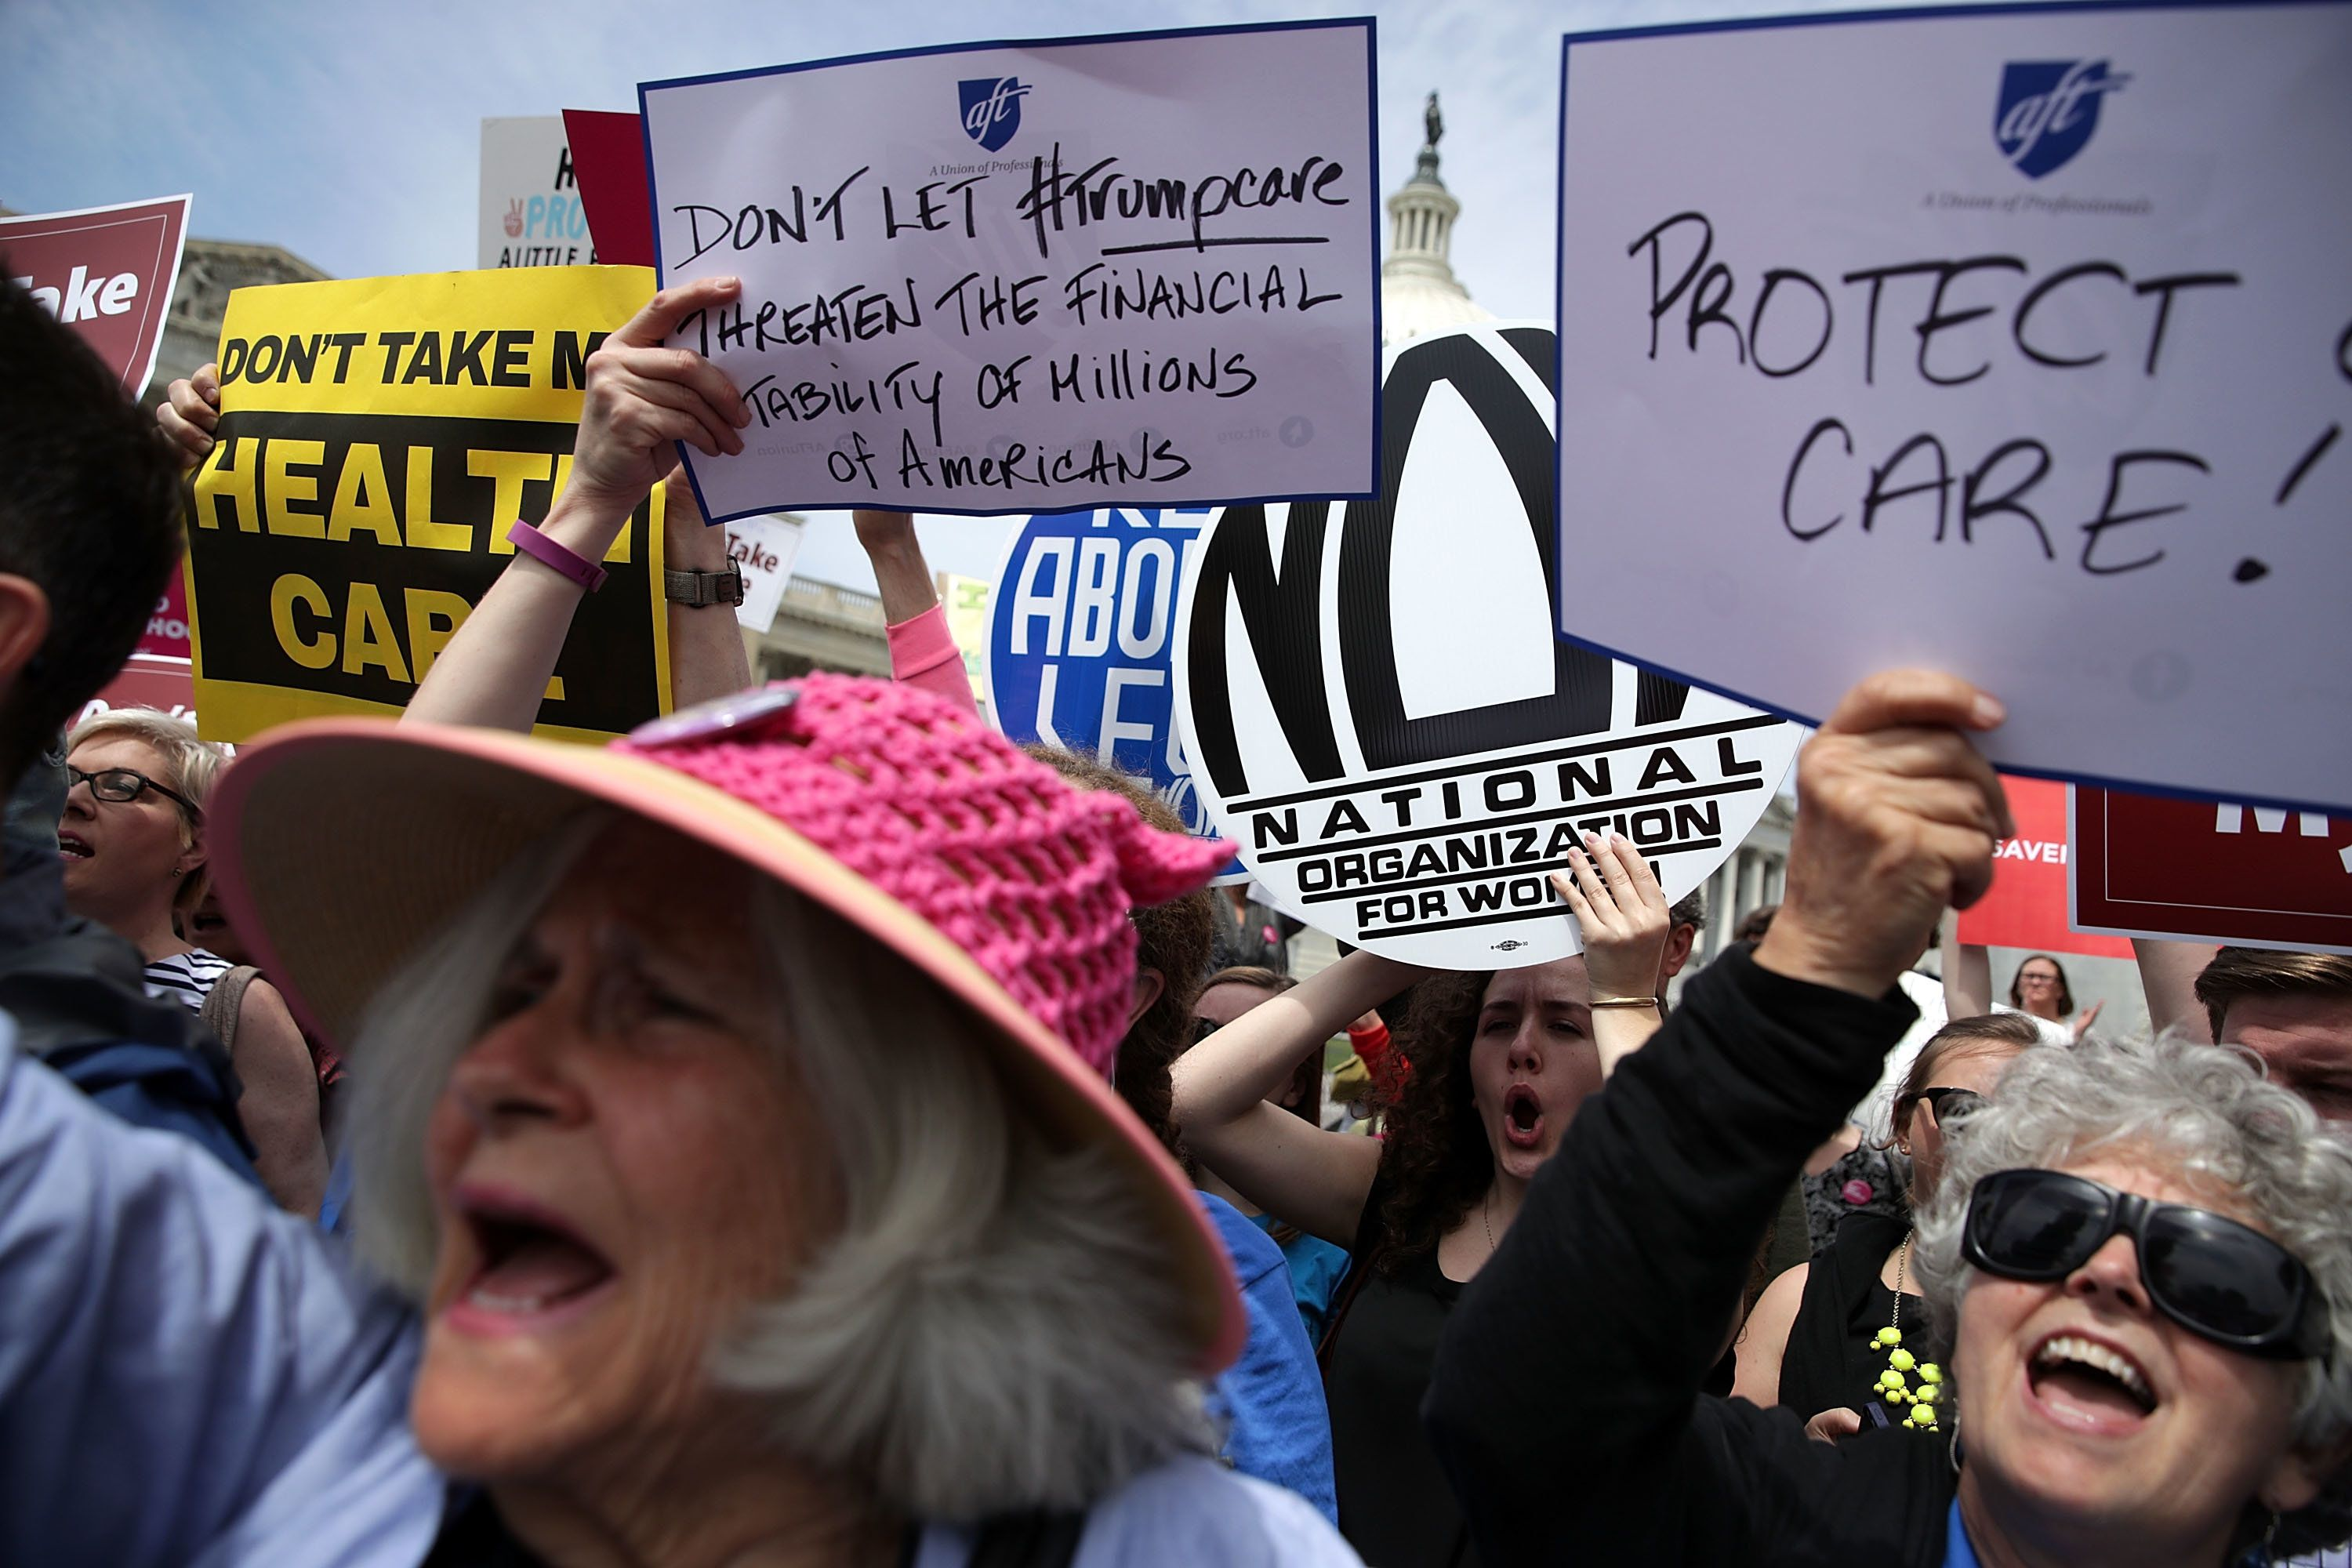 WASHINGTON, DC - MAY 04:  Activists hold signs during a Stop 'Trumpcare' rally May 4, 2017 in front of the Capitol in Washington, DC. Congressional Democrats joined activists for a rally to urge not to replace Obamacare, also known as the Affordable Care Act.  (Photo by Alex Wong/Getty Images)